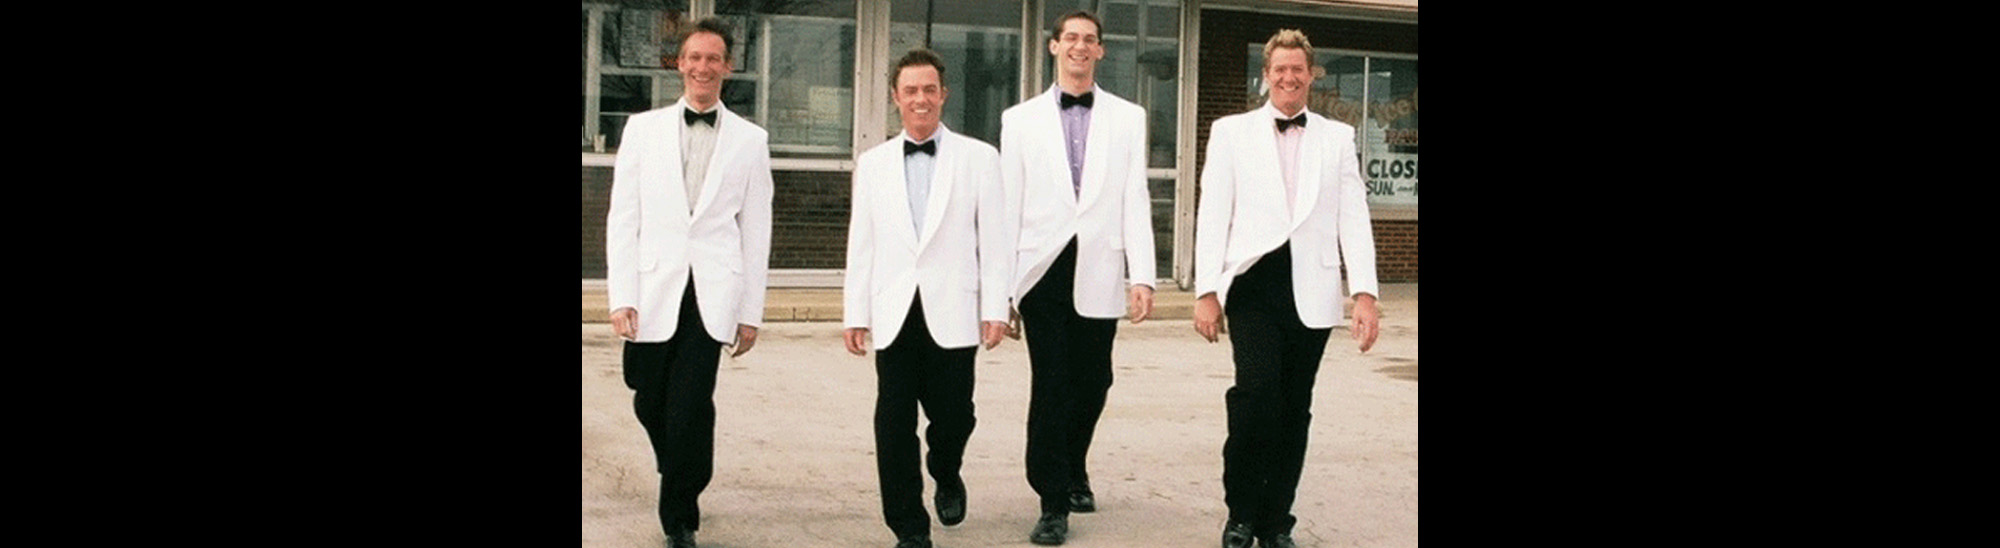 four-guyz-in-dinner-jackets-call-us-old-fashioned-the-supper-club-tour